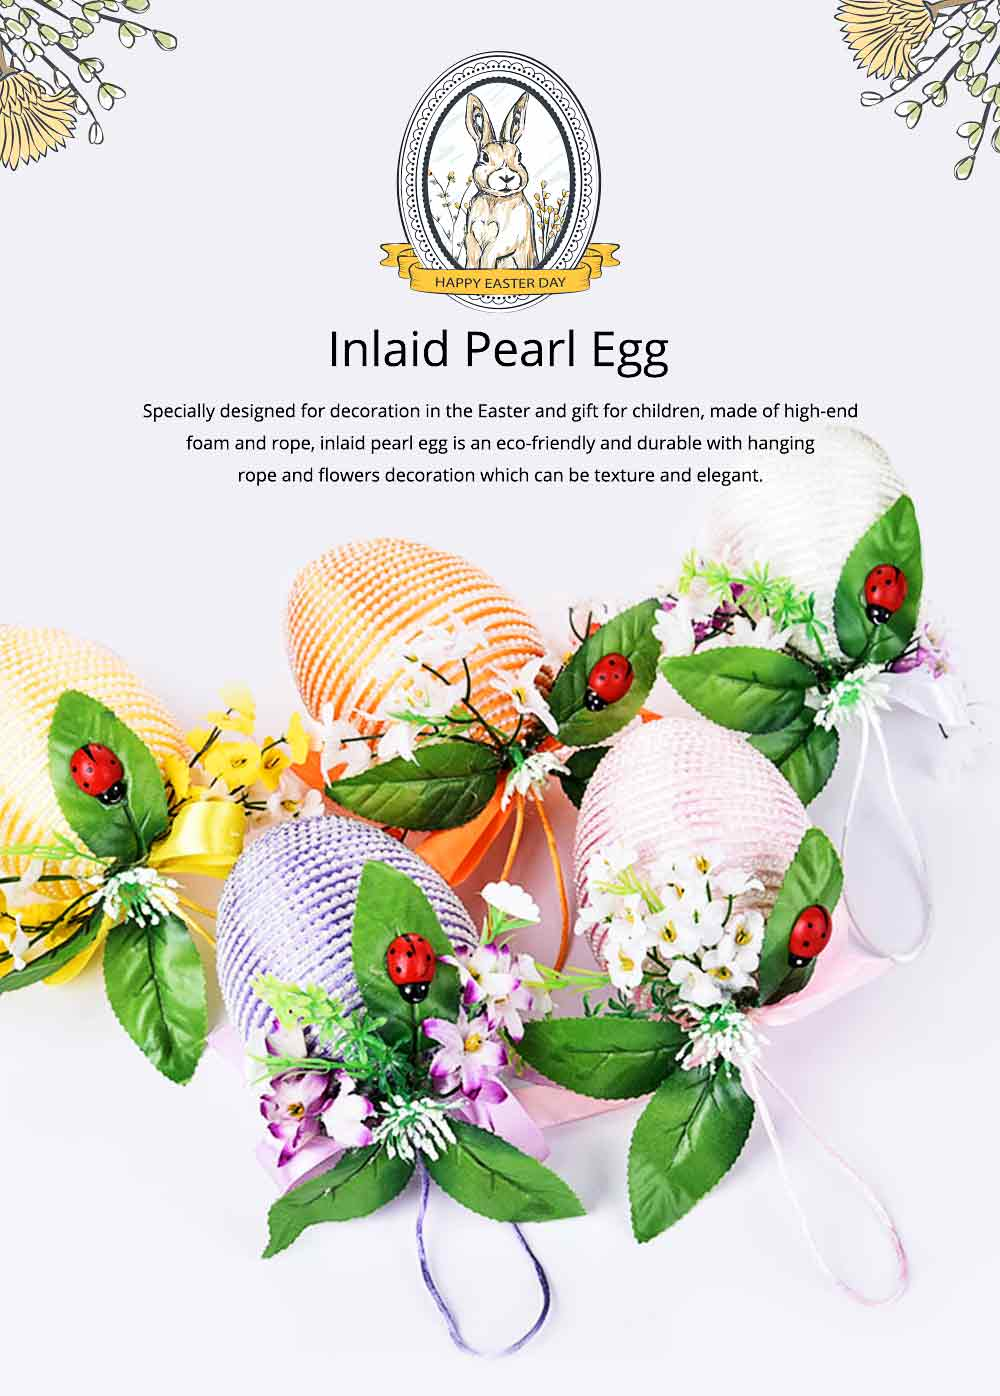 Inlaid Pearl Egg Easter Decoration With 10cm Diameter, Indoor Outdoor Hanging Easter Egg Flower Basket 0